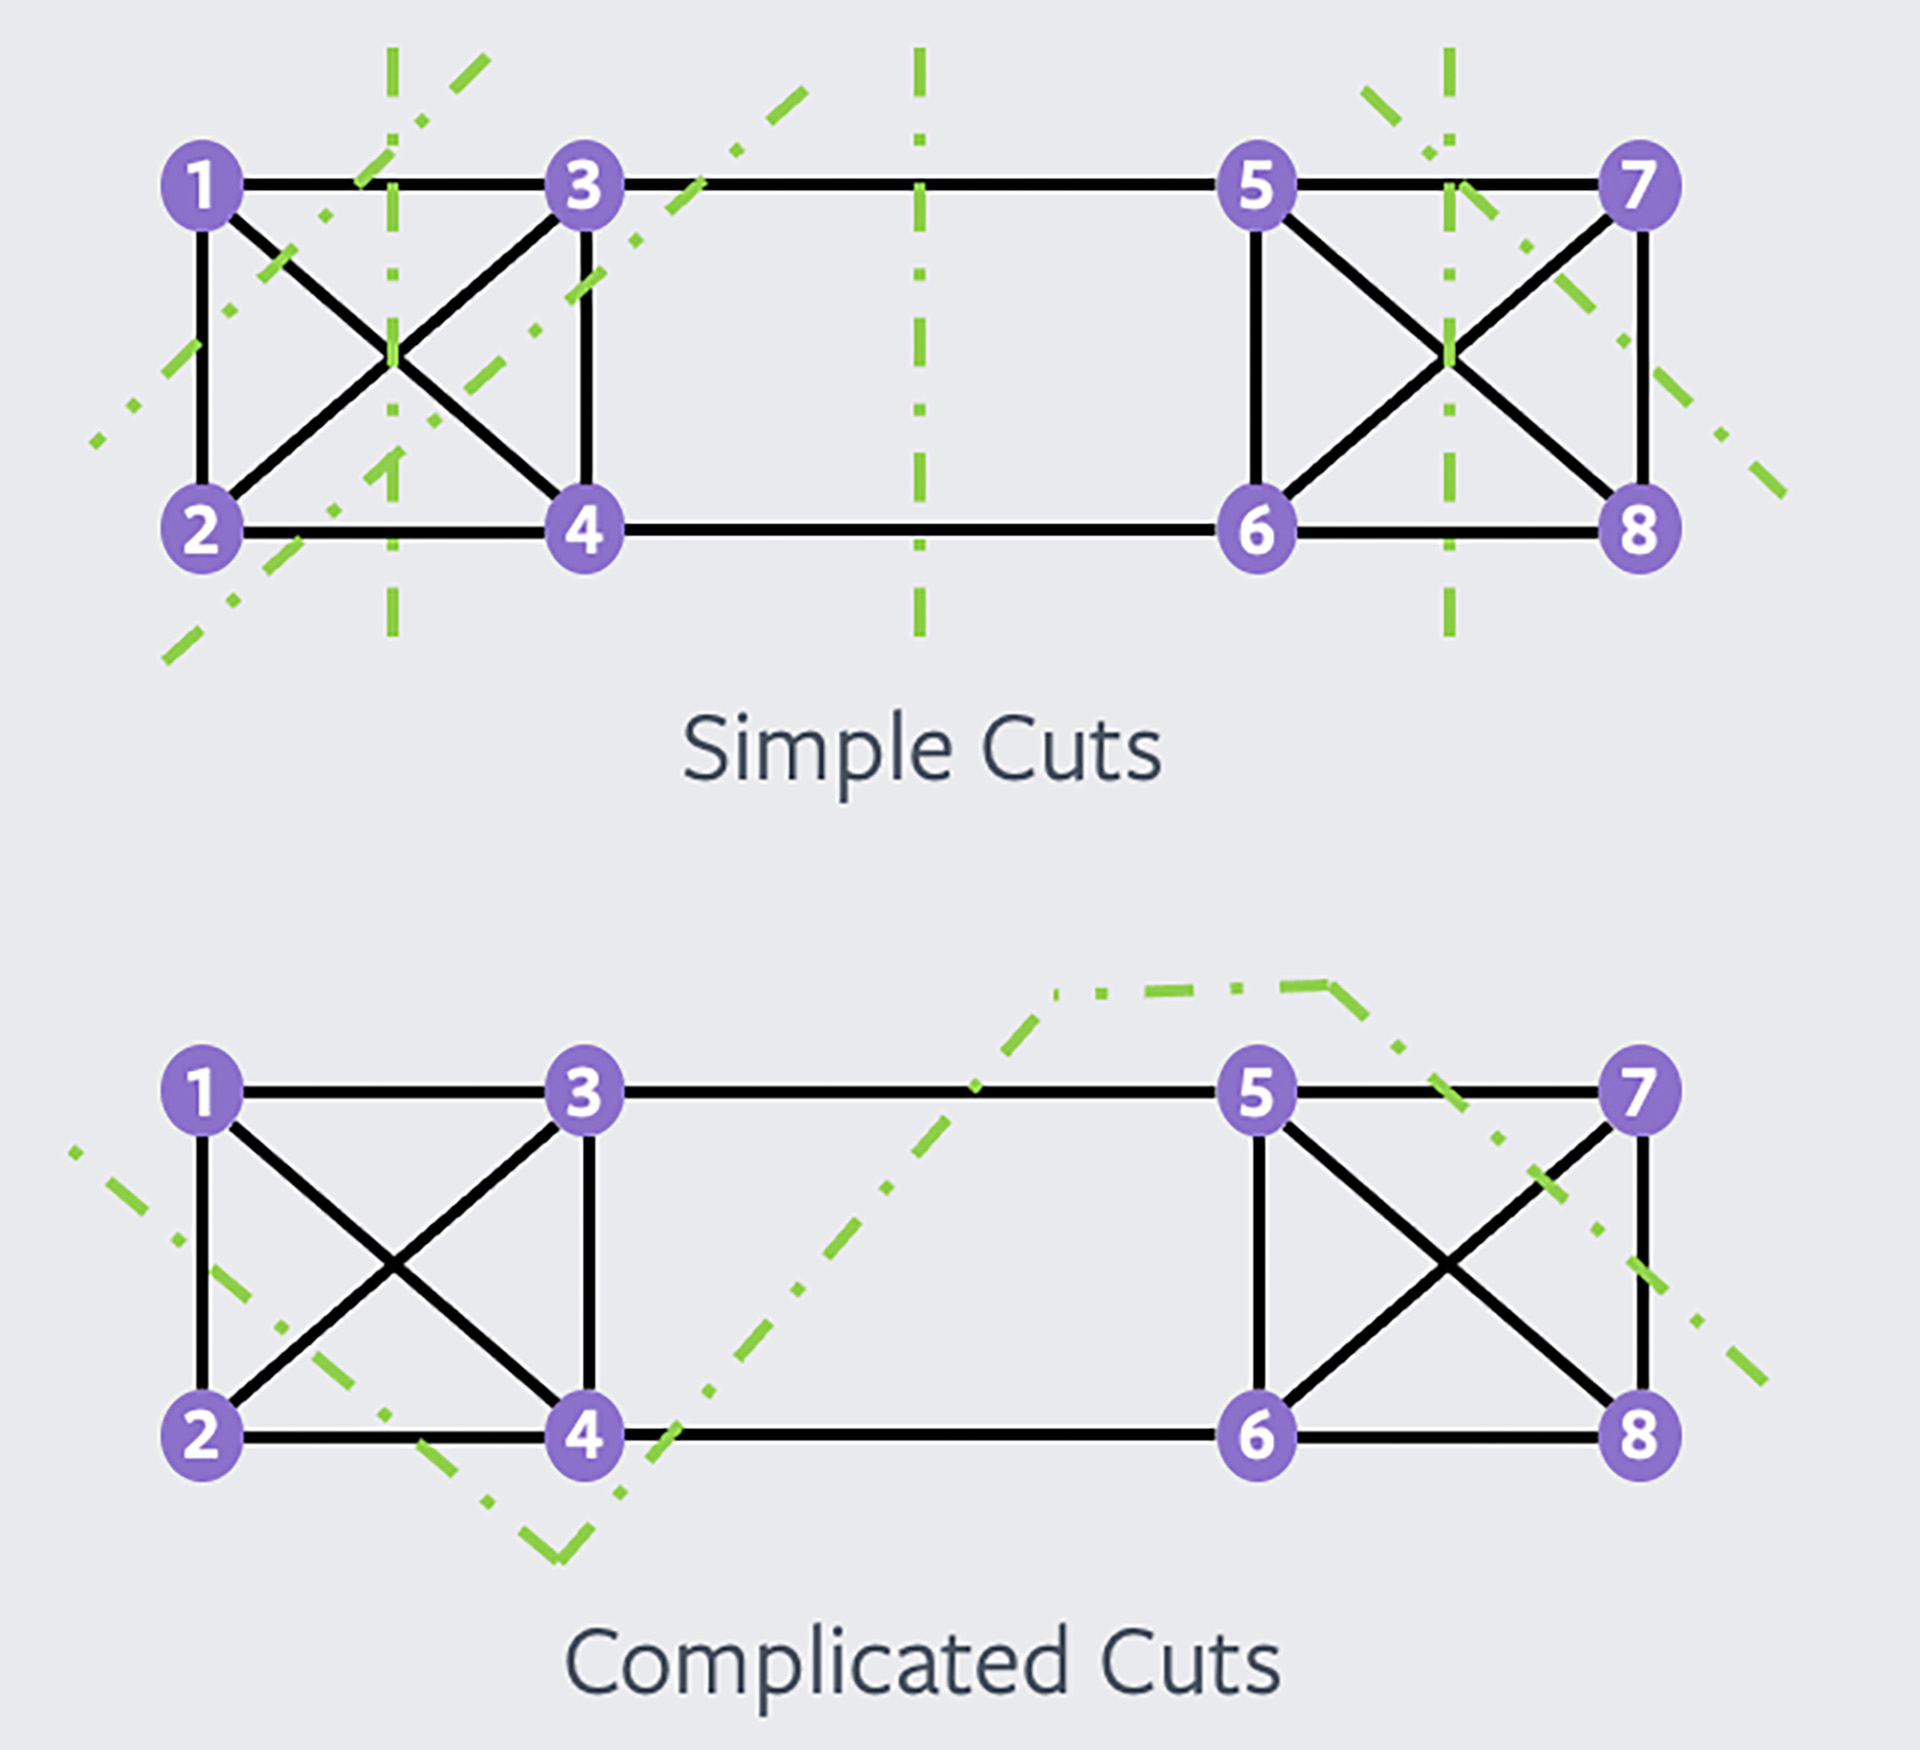 A complicated cut is already taken into account by a set of simple cuts.